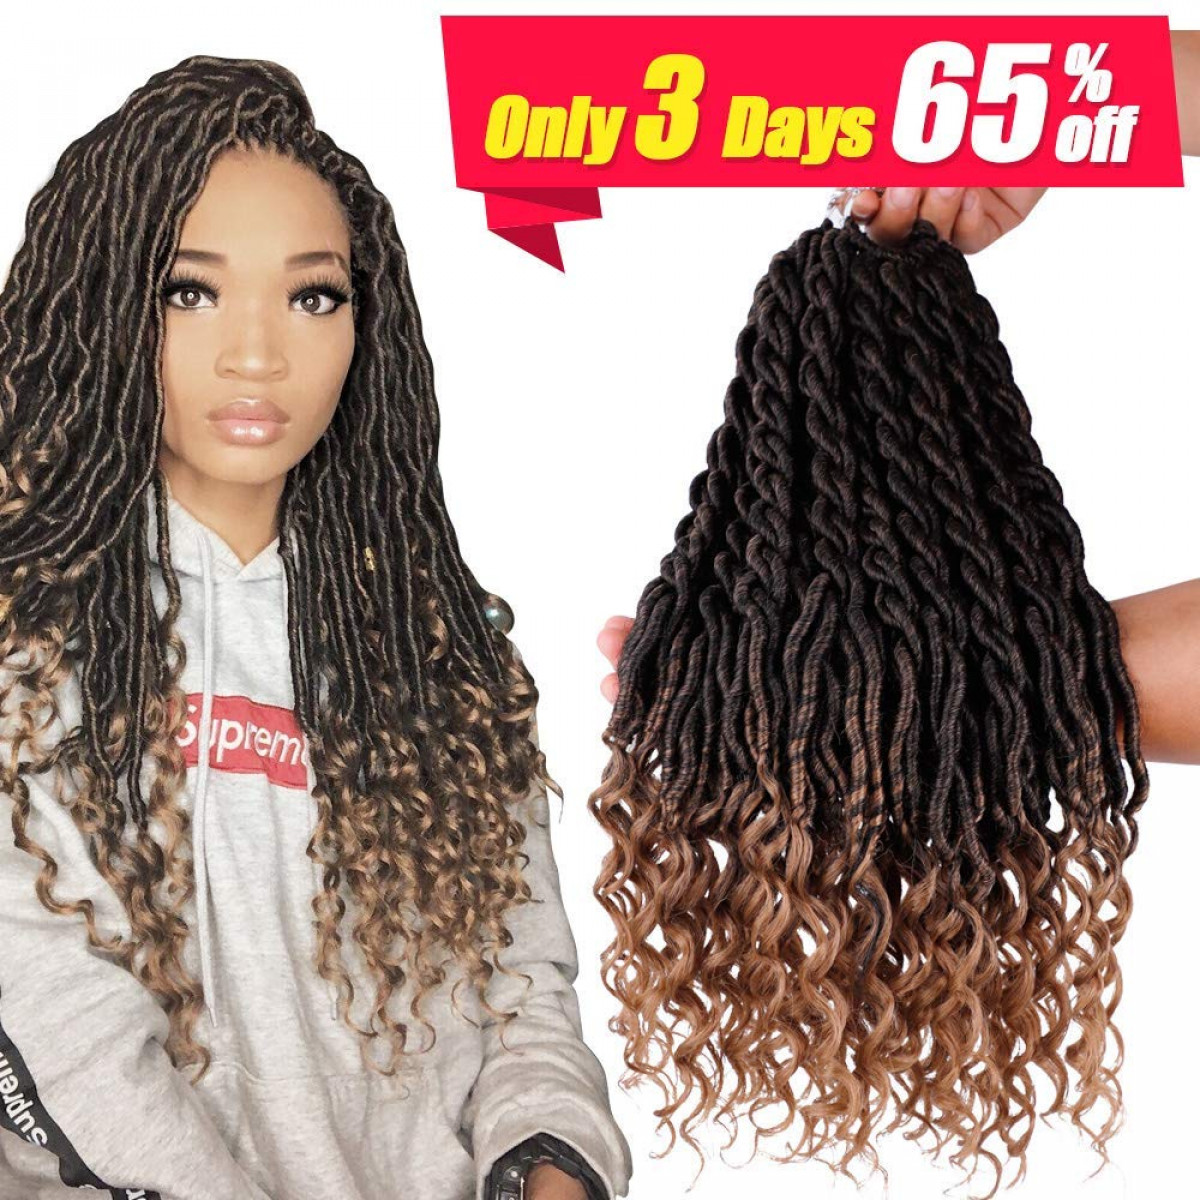 6Packs/Lot Wavy Faux Locs Braids 20Inch Ombre Faux Locs Crochet Hair with  Curly Ends Goddess Crochet Synthetic Braiding Extensions(T1B,27)